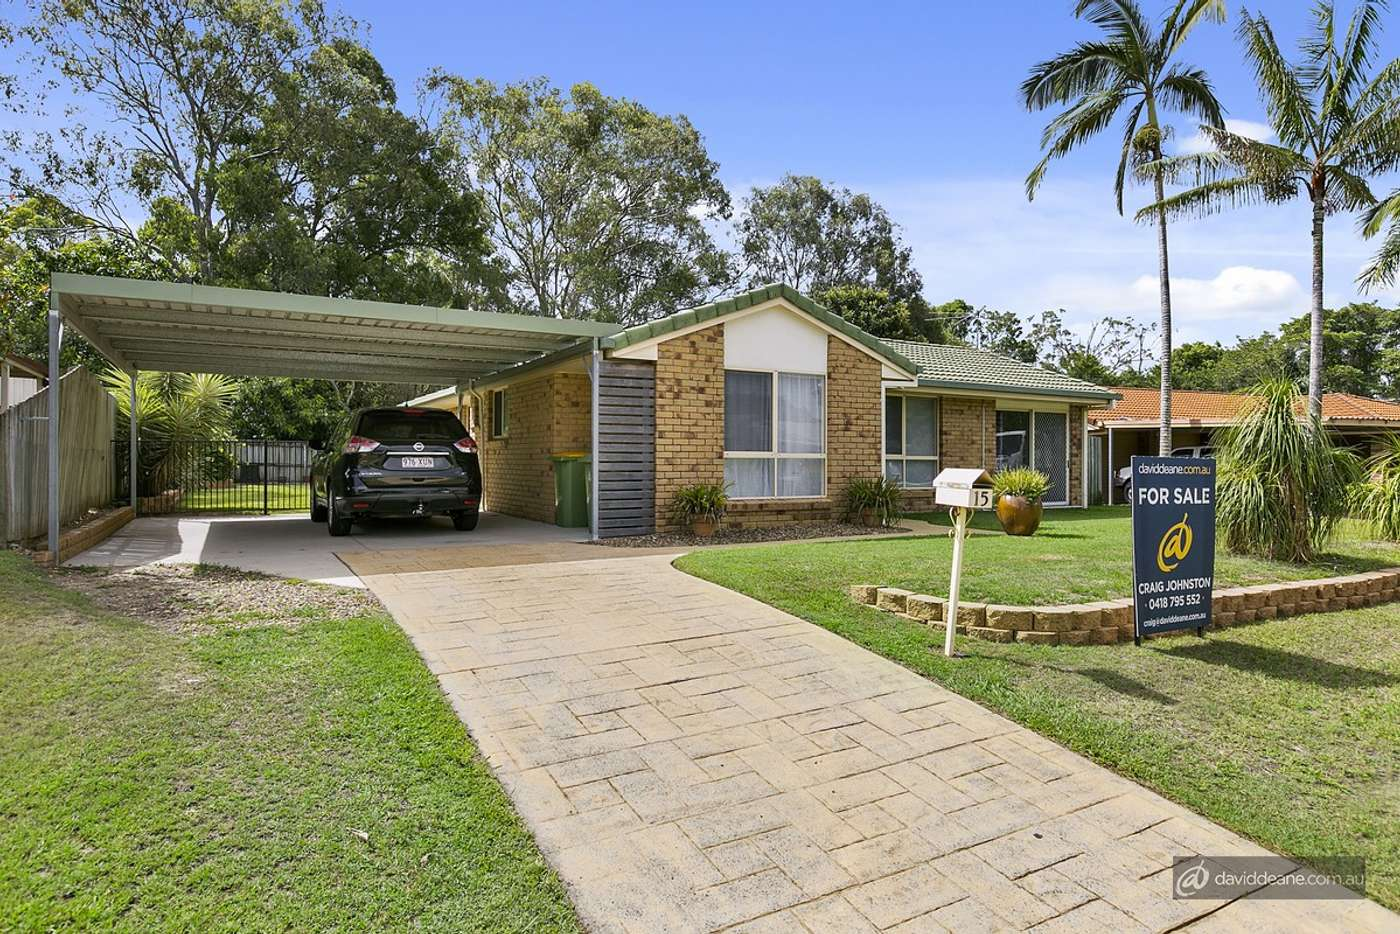 Main view of Homely house listing, 15 Newbury Crescent, Lawnton QLD 4501